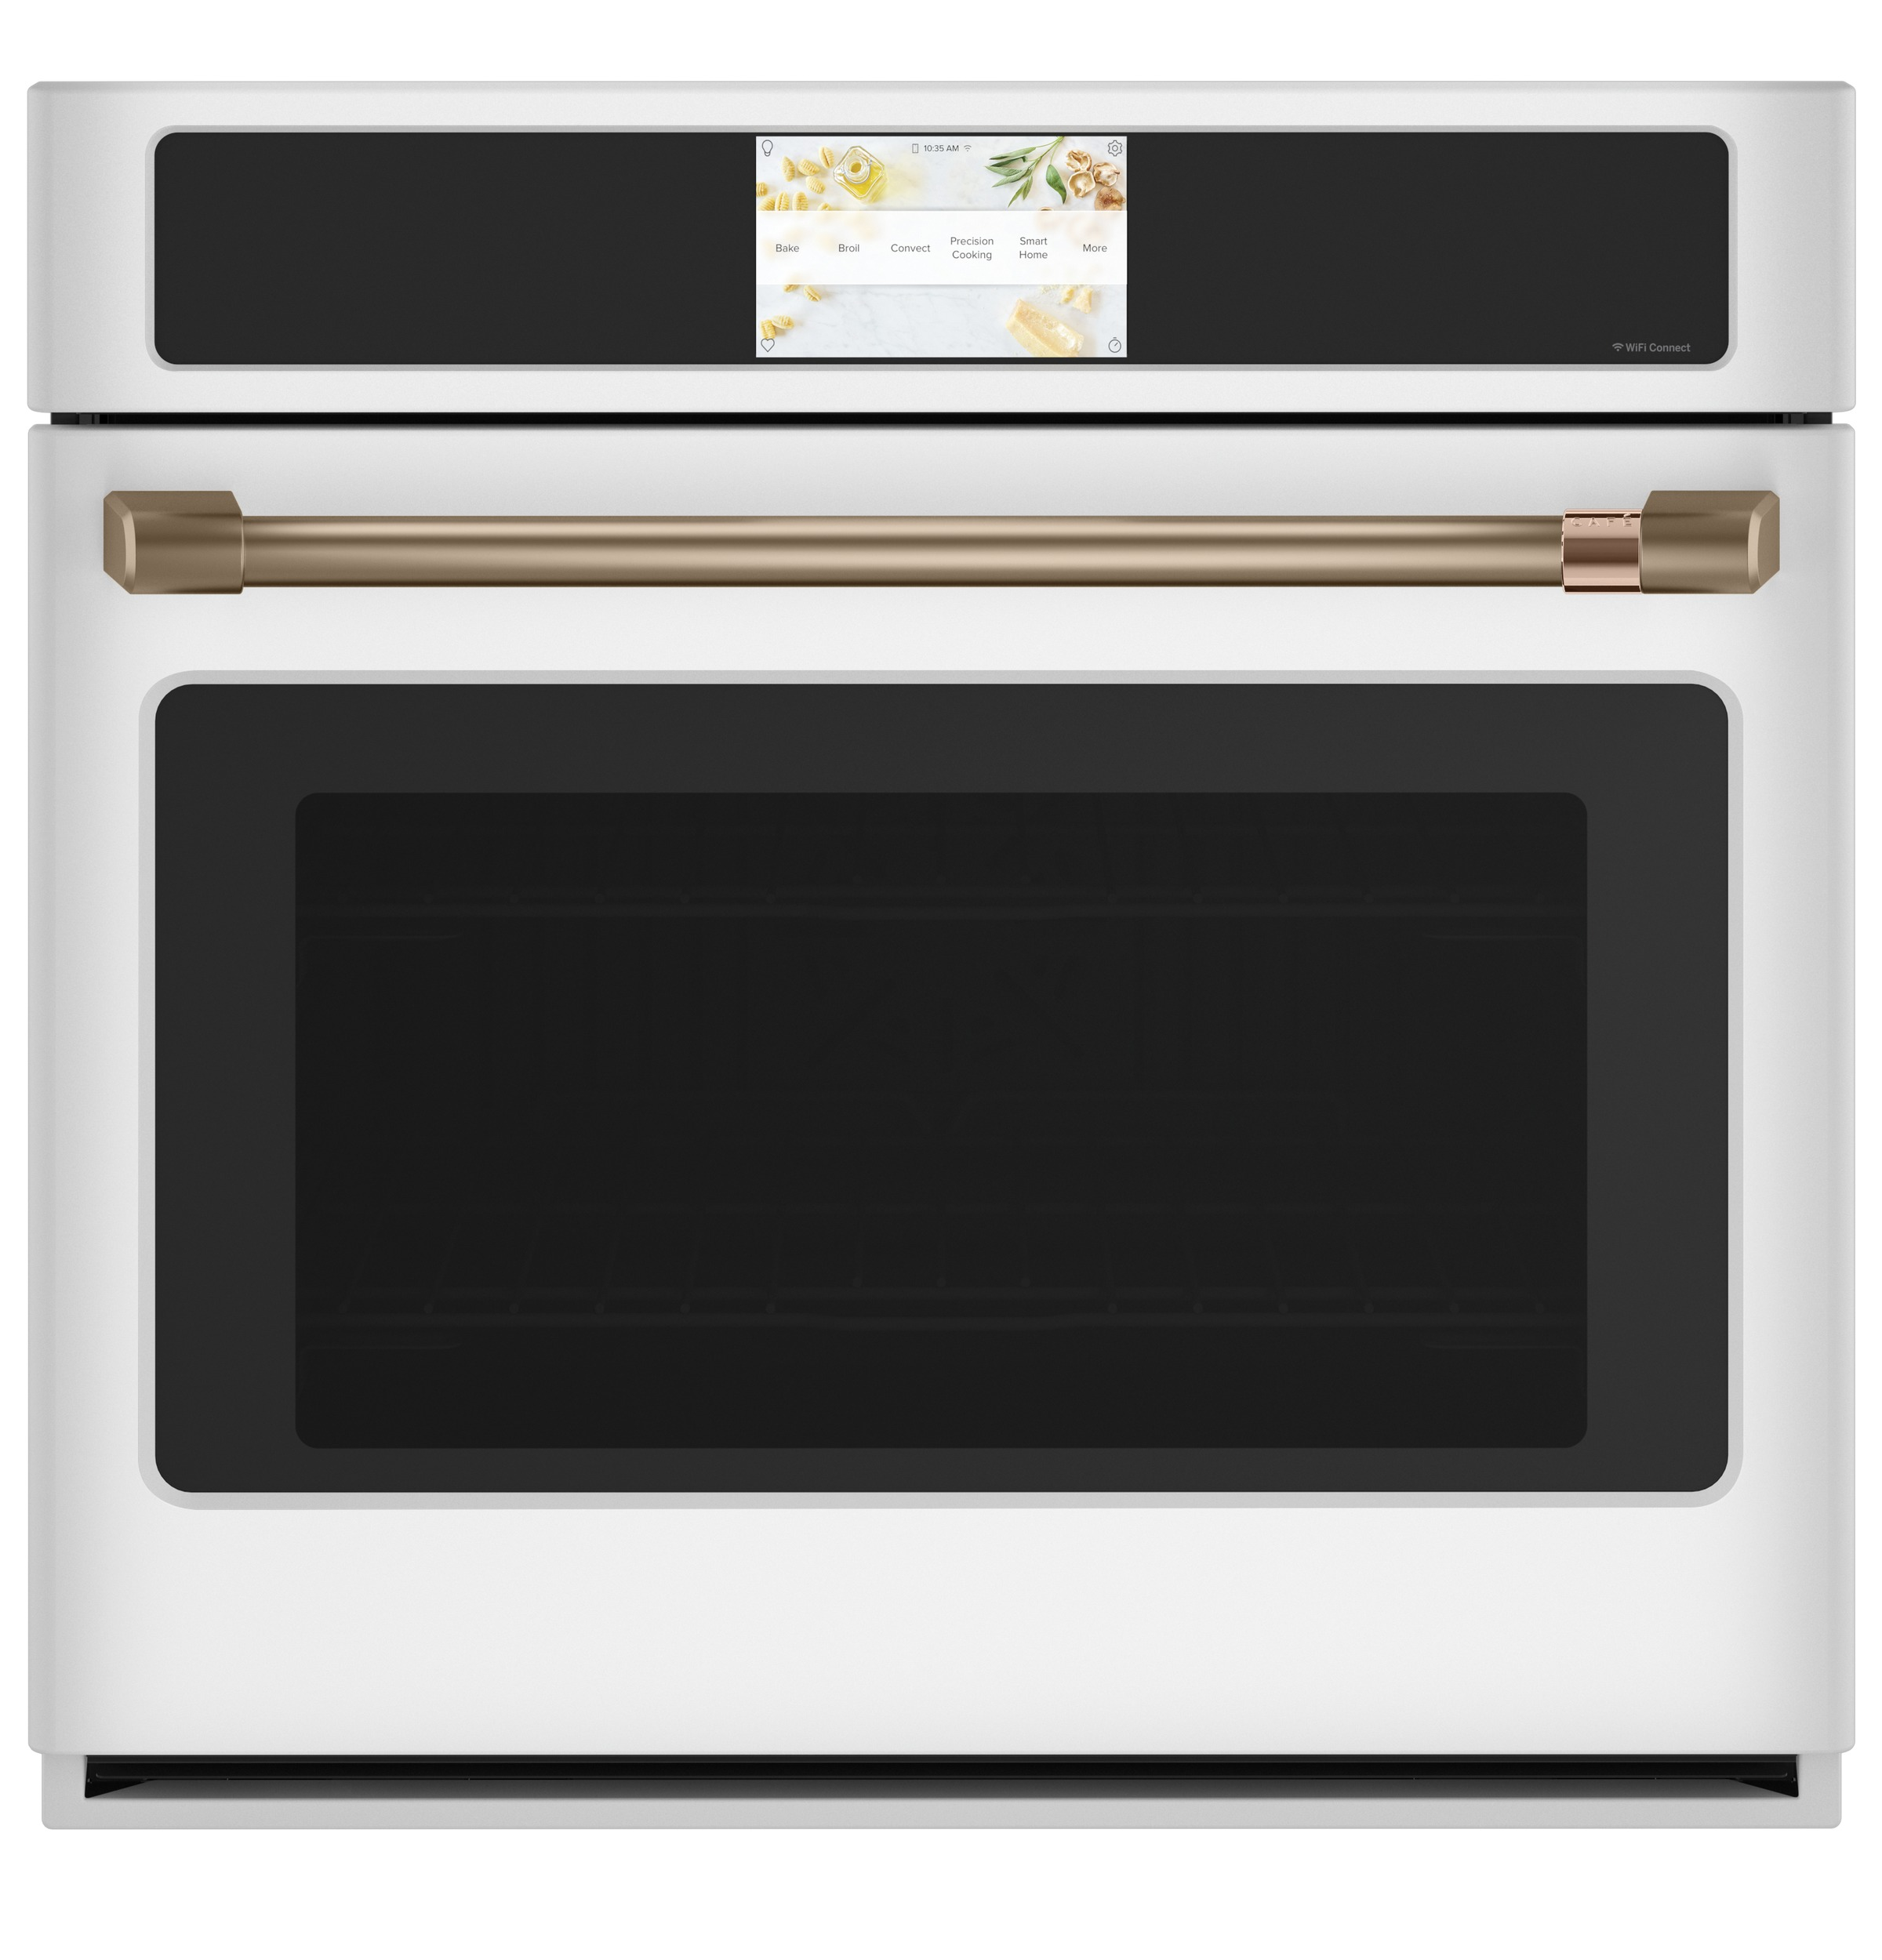 "Cafe Café™ Professional Series 30"" Smart Built-In Convection Single Wall Oven"